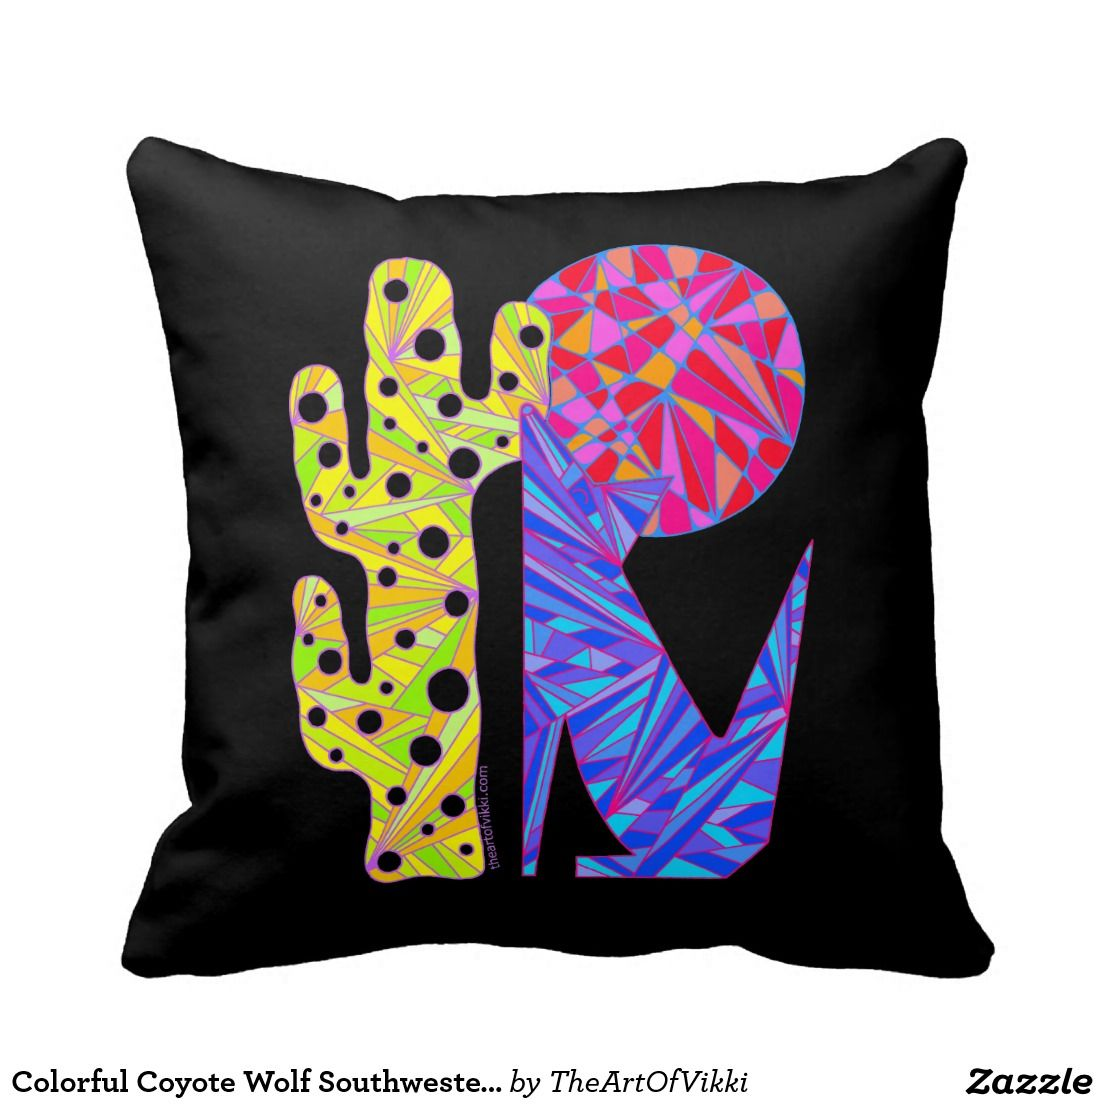 Colorful Coyote Wolf Southwestern Art Pillow